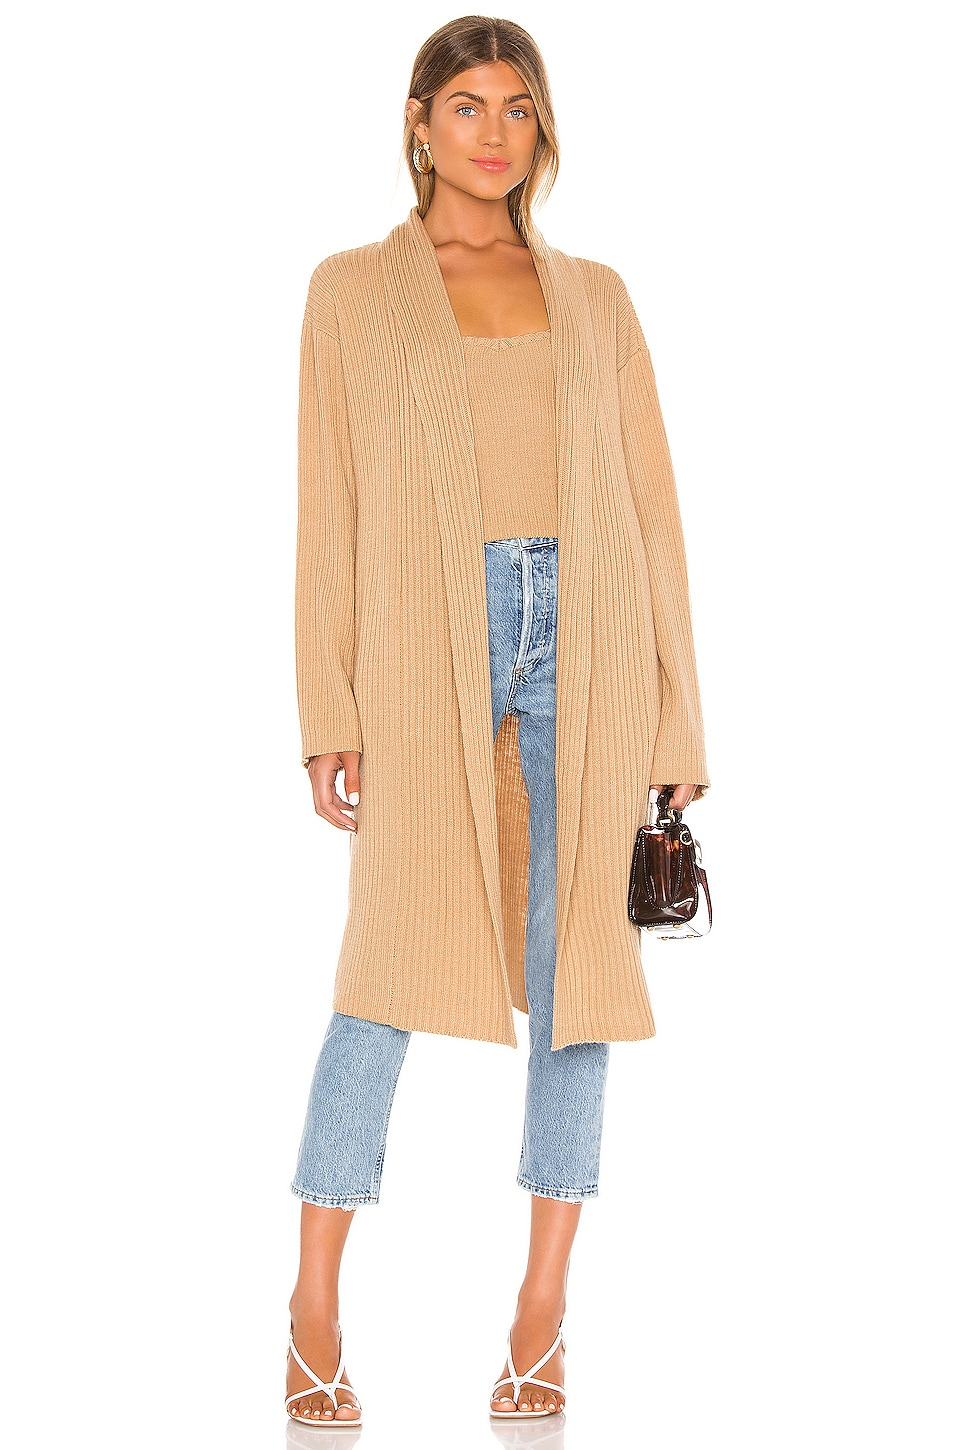 Pawnie Cardigan                   Song of Style                                                                                                                             CA$ 232.78 8